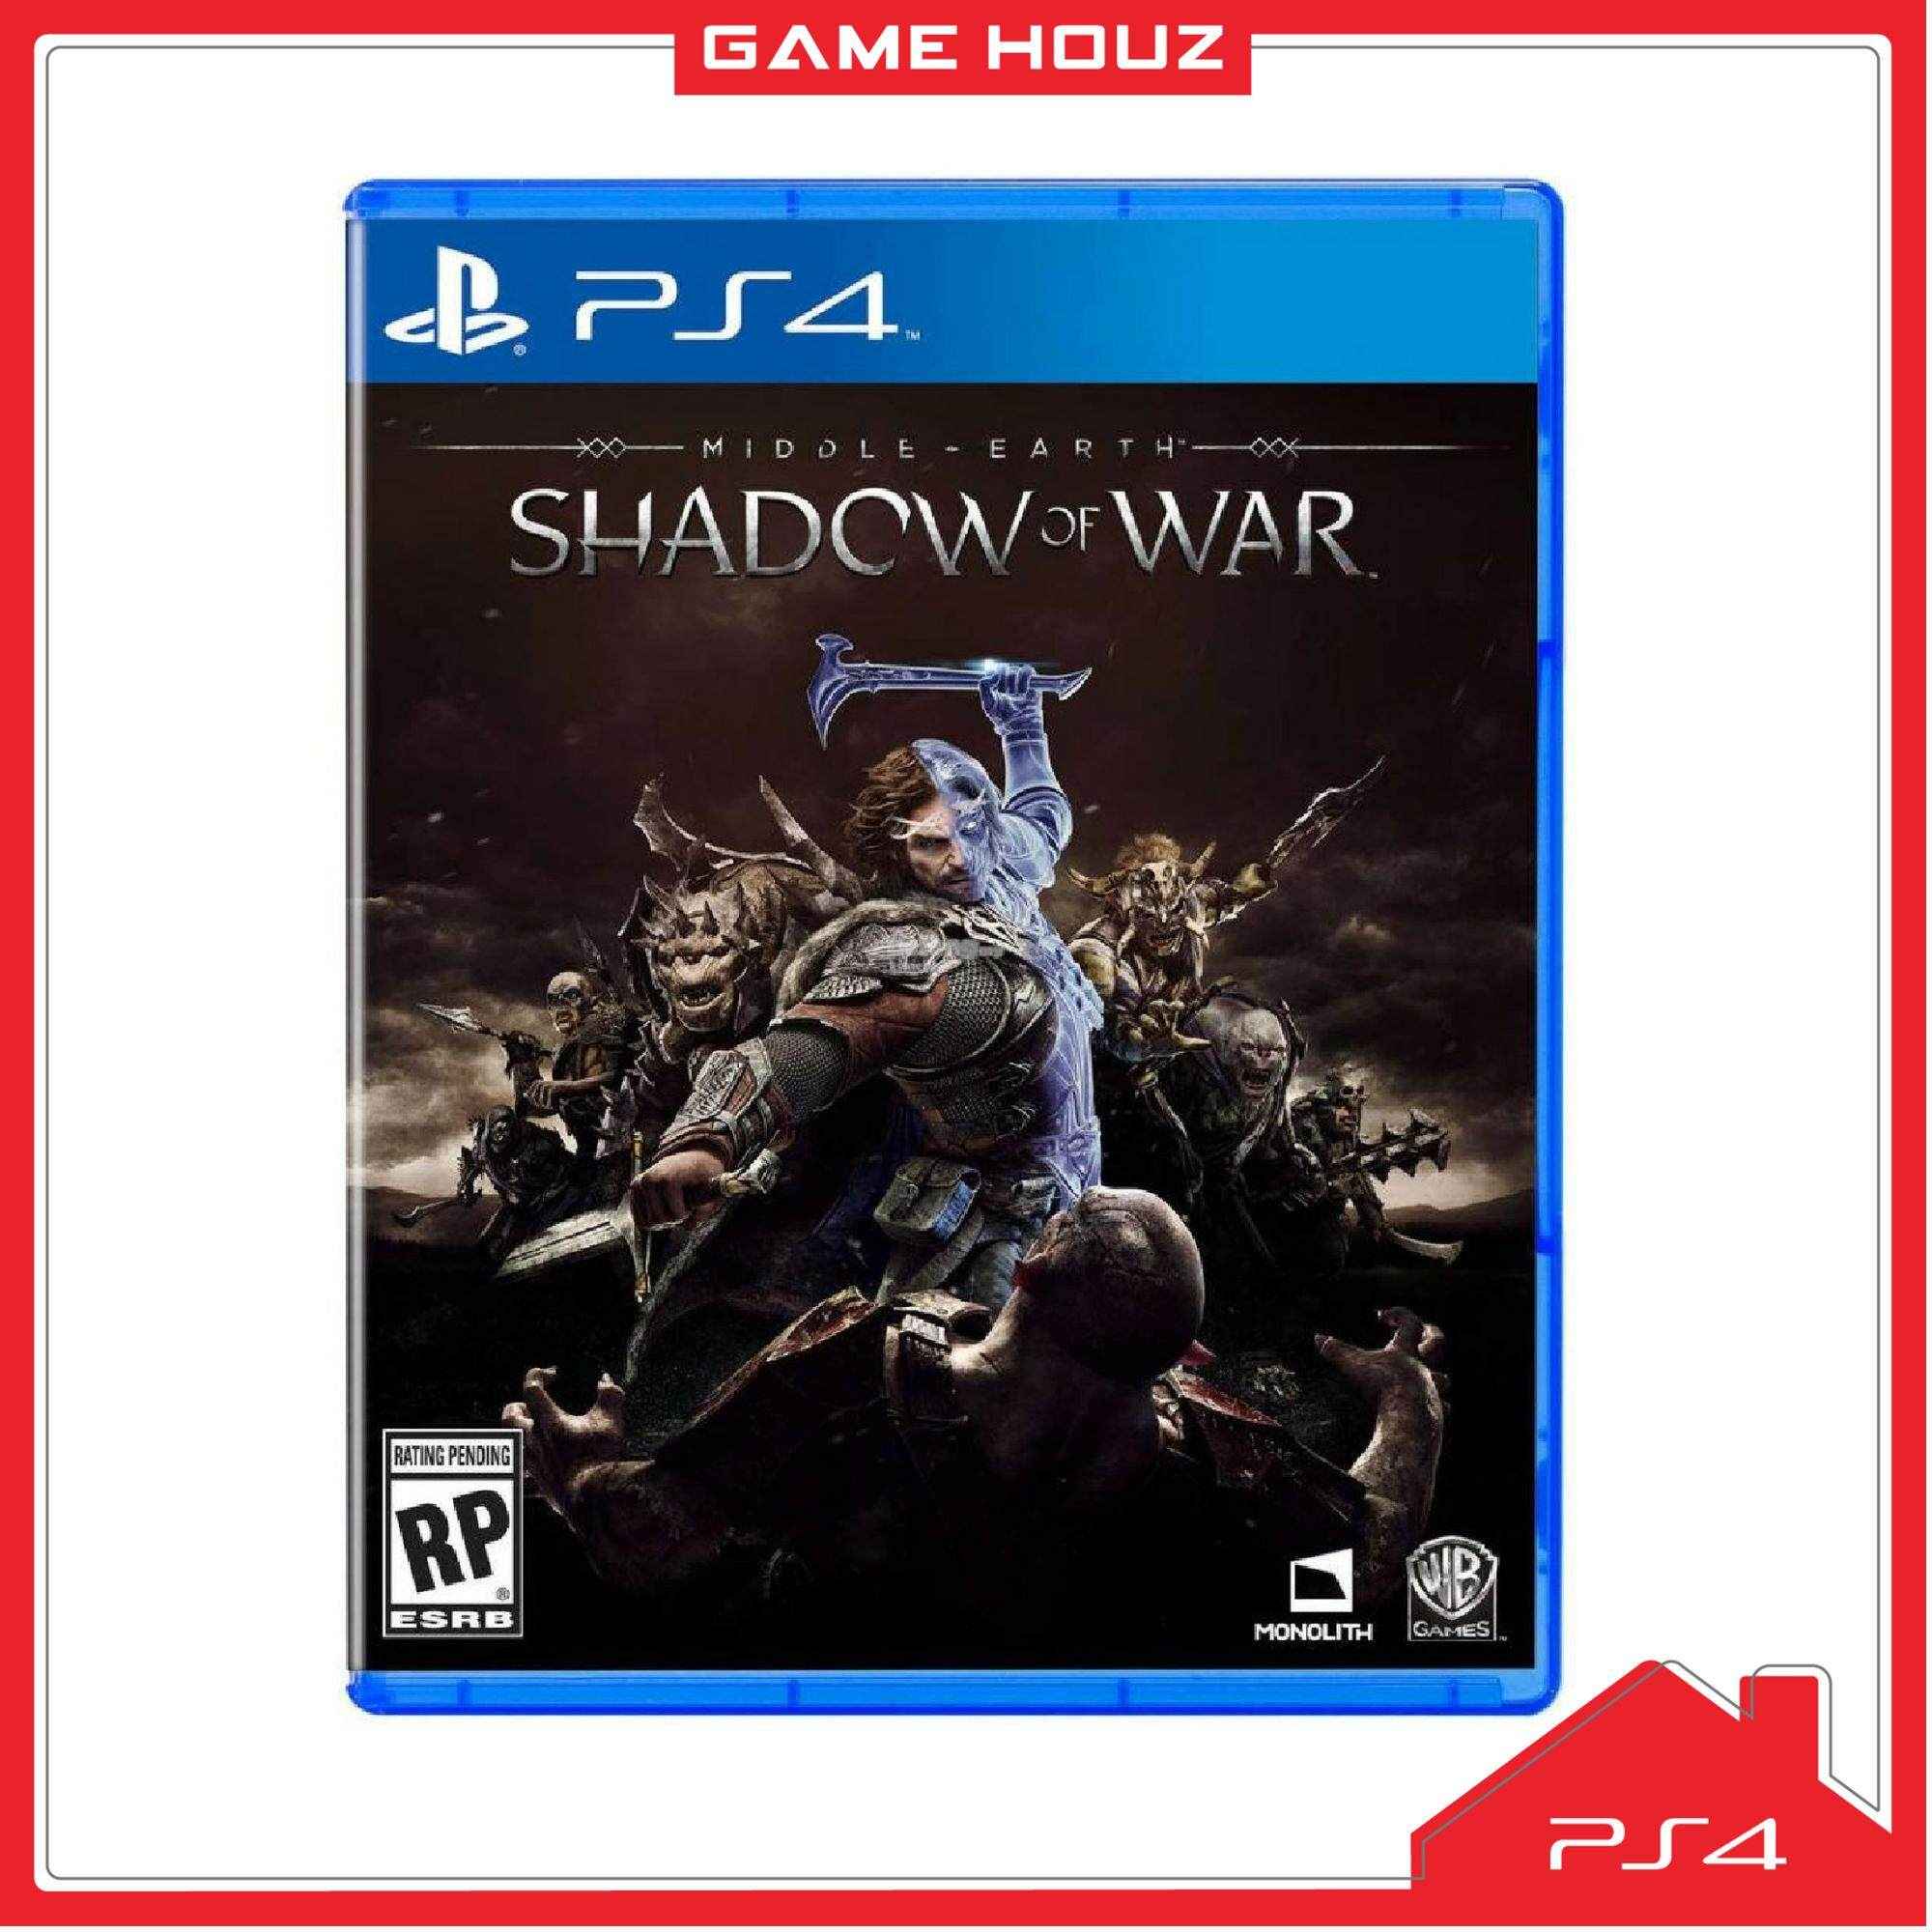 (PS4) Middle Earth: Shadow of War (R3/ENG/CHN)